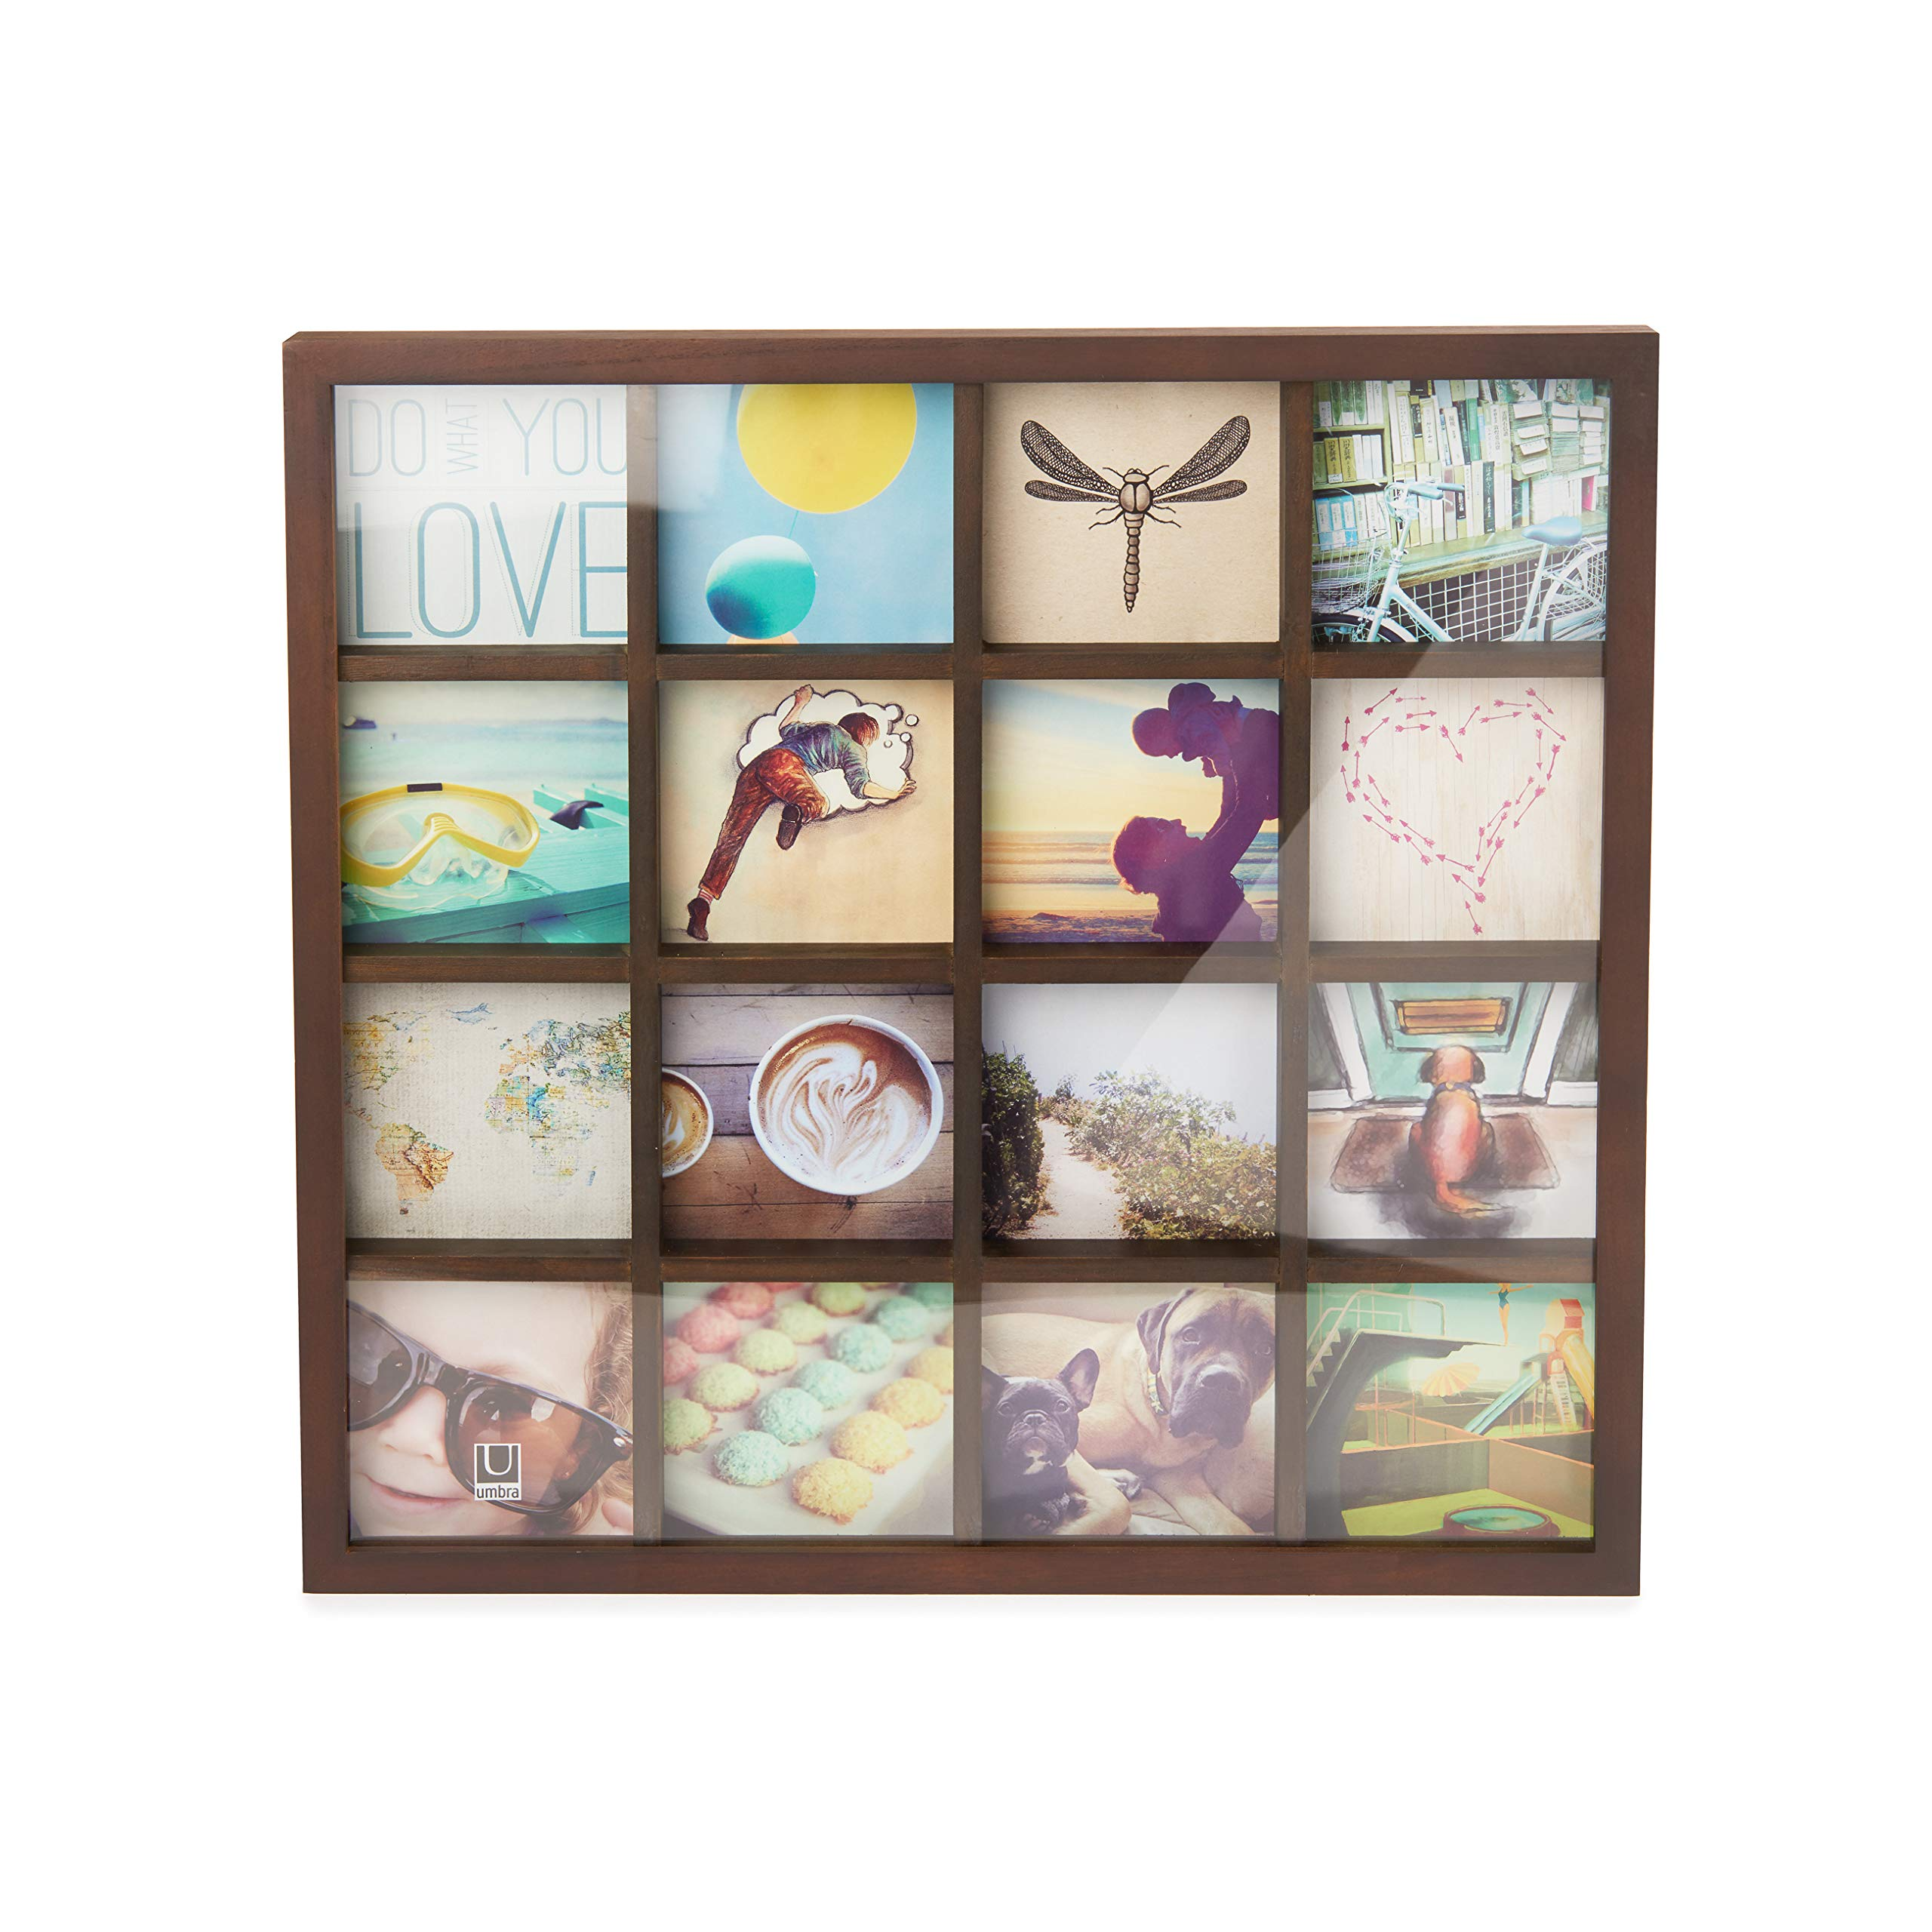 Umbra Gridart 4x4 Picture Frame - DIY Gallery Style Multi Picture Photo Collage Frame, Displays 16 Square 4 by 4 inch Photos, Illustrations, Art, Graphic Text & More, Walnut by Umbra